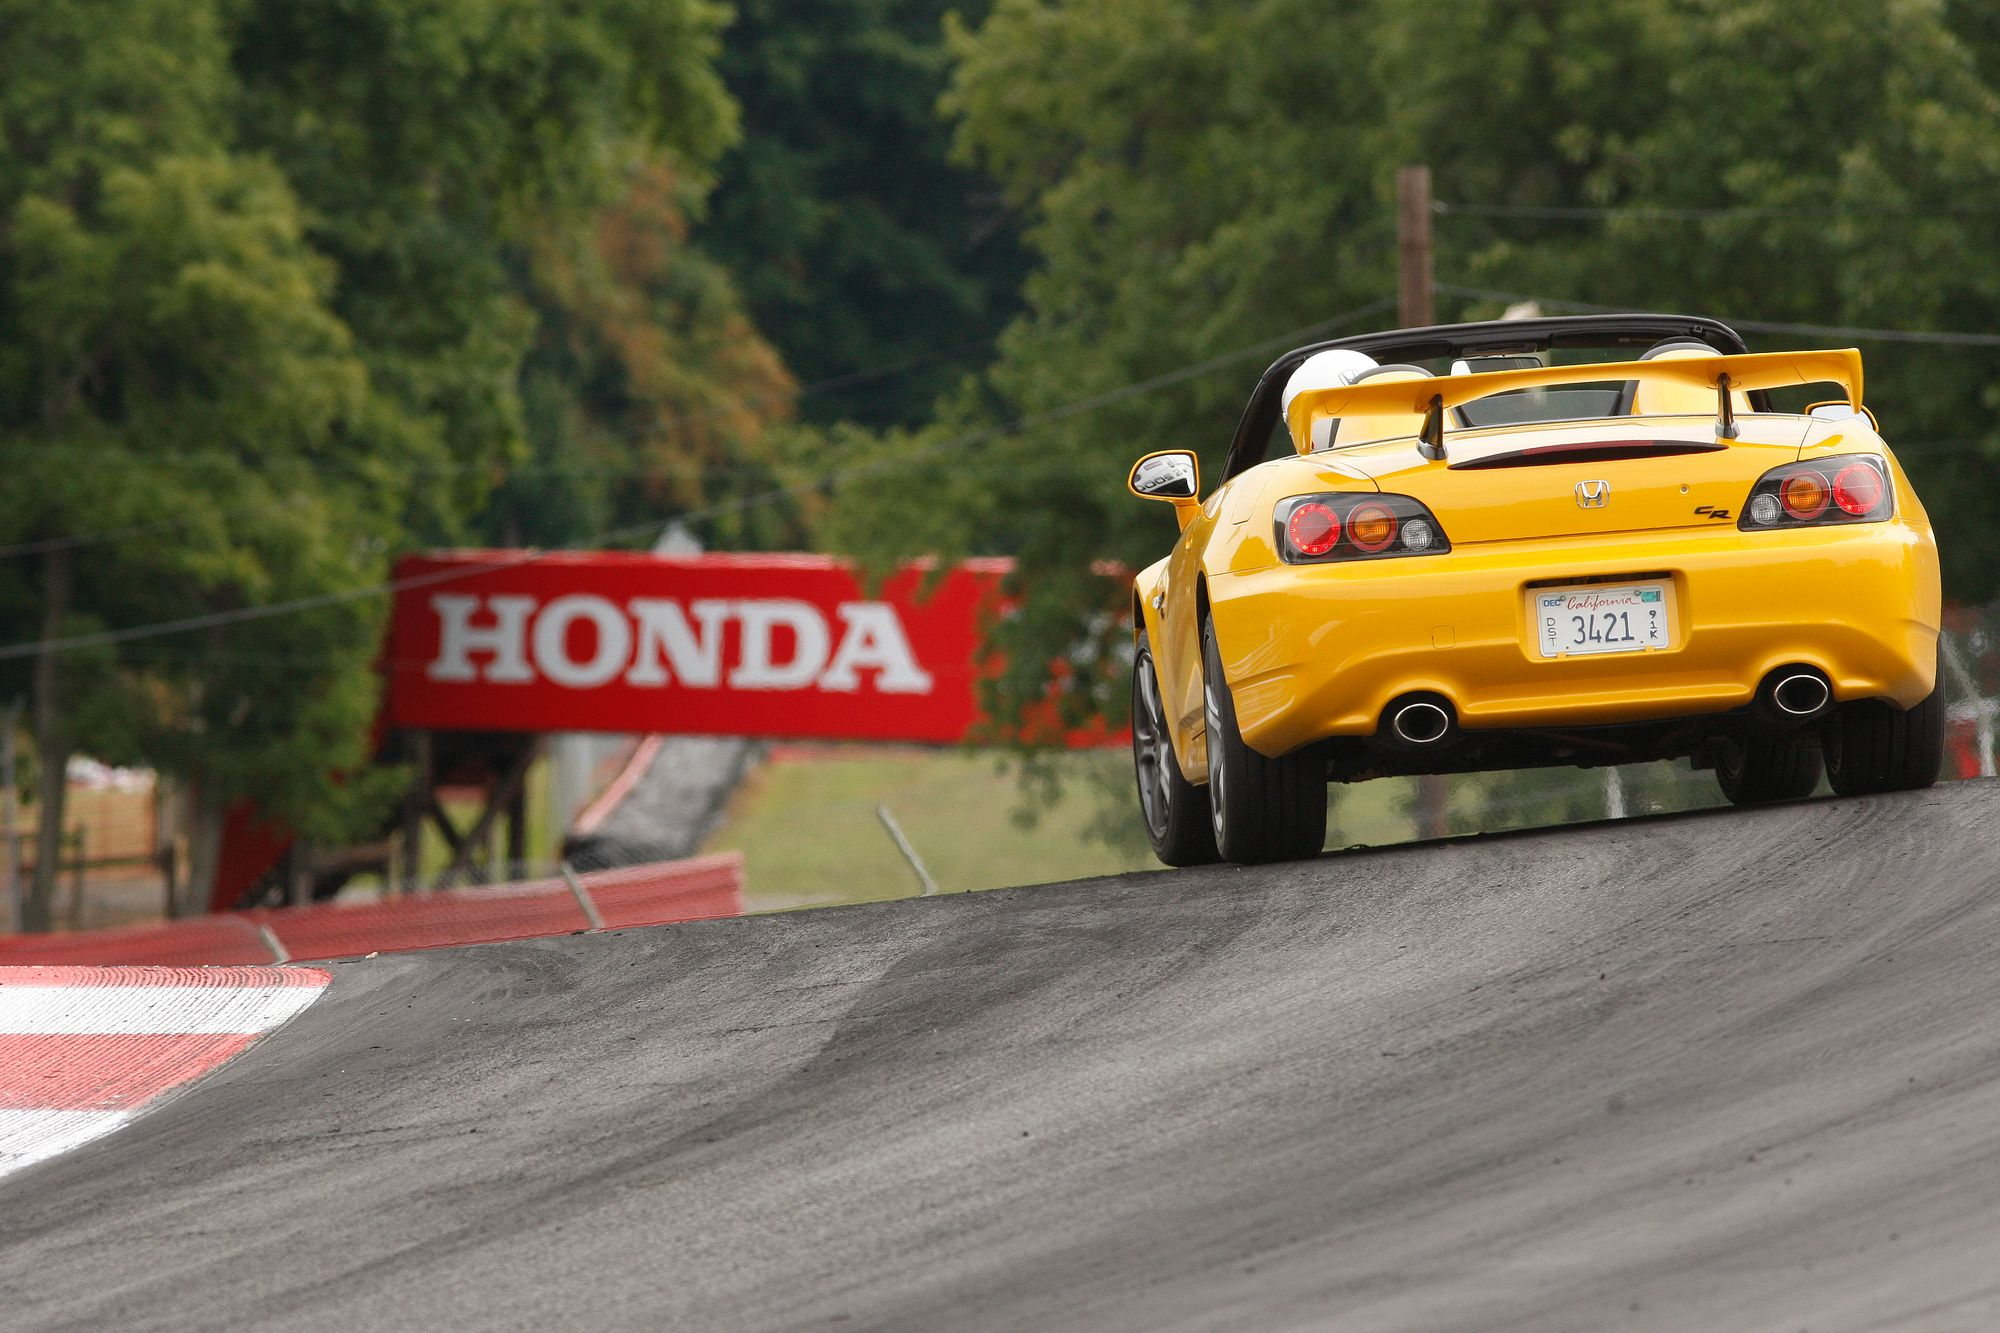 Honda Wants Your Feedback On New S2000 Parts